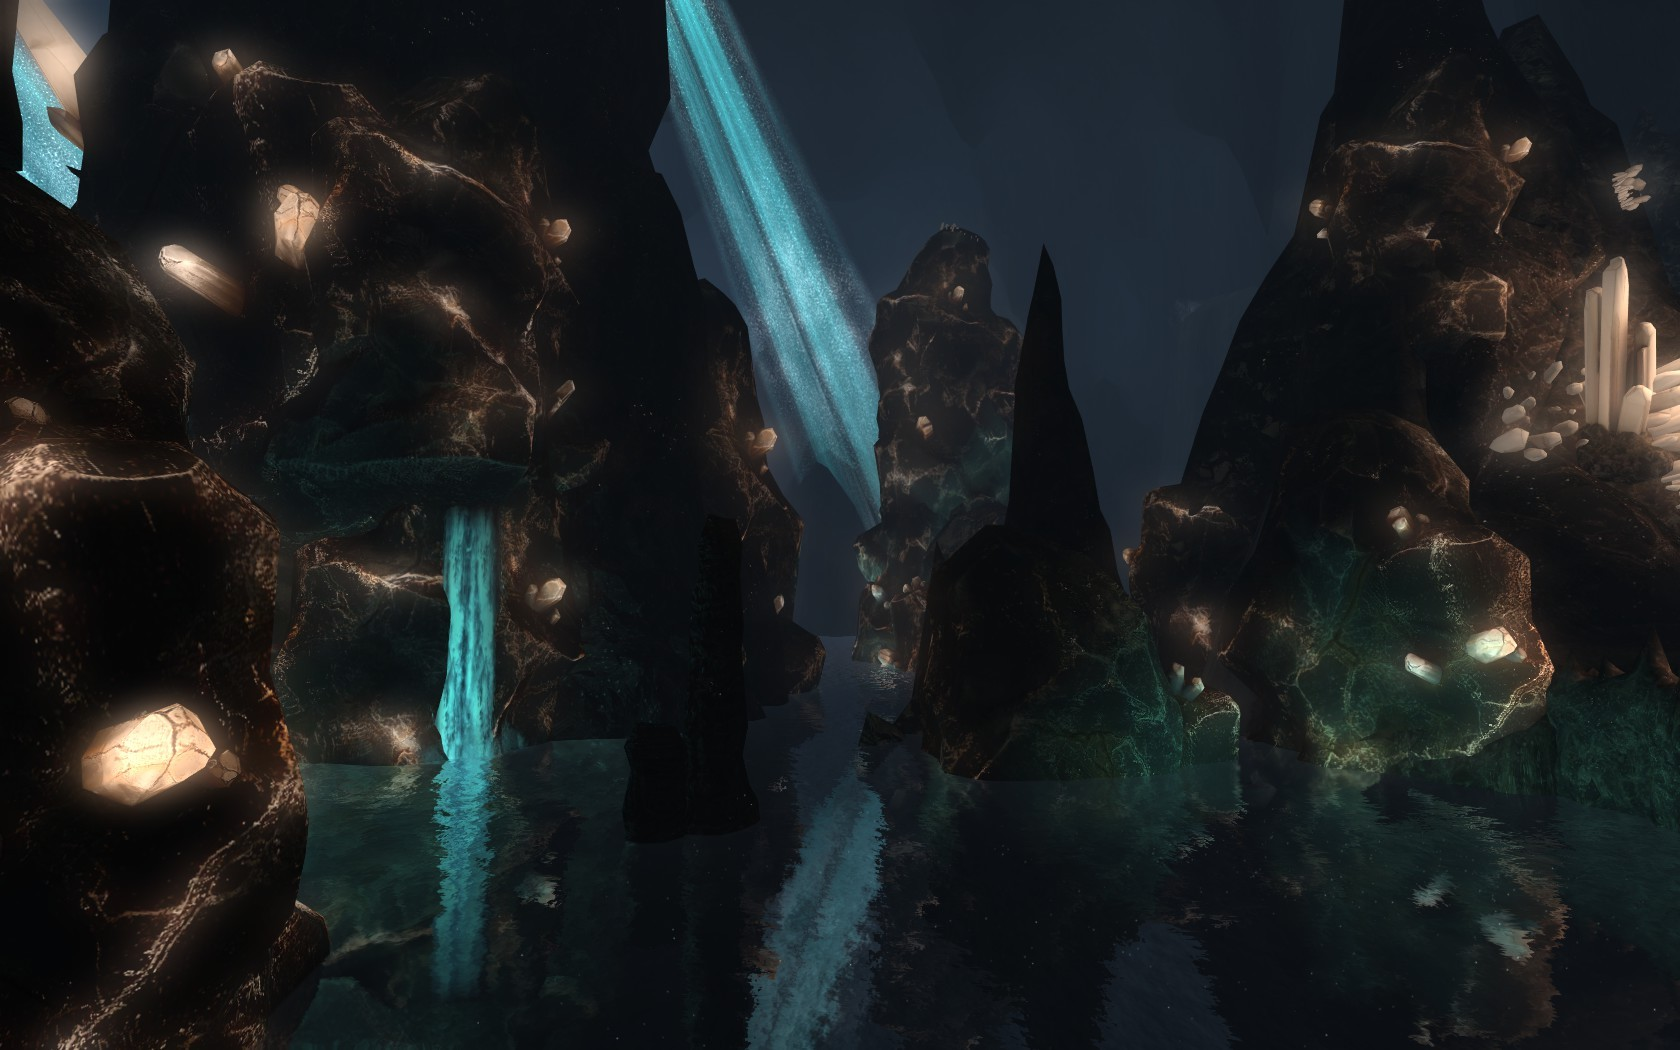 Lord of the Rings Online - The beautiful caves of Helms Deep